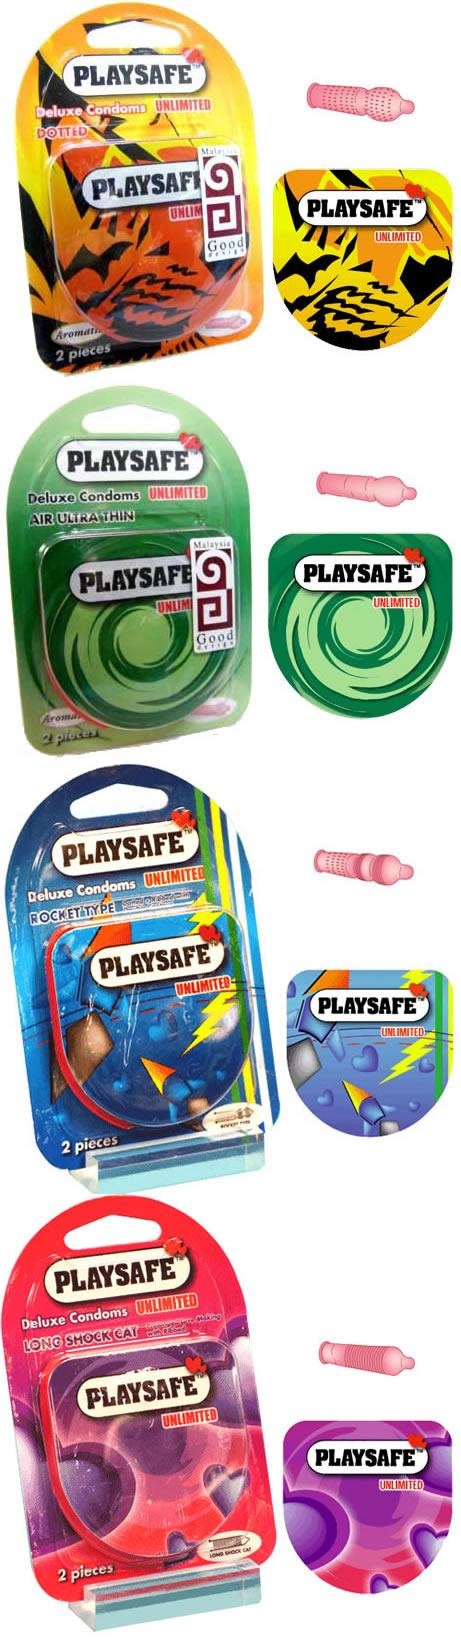 PLAYSAFE QUICK & EASY 4 in 1 COMBO - 8's